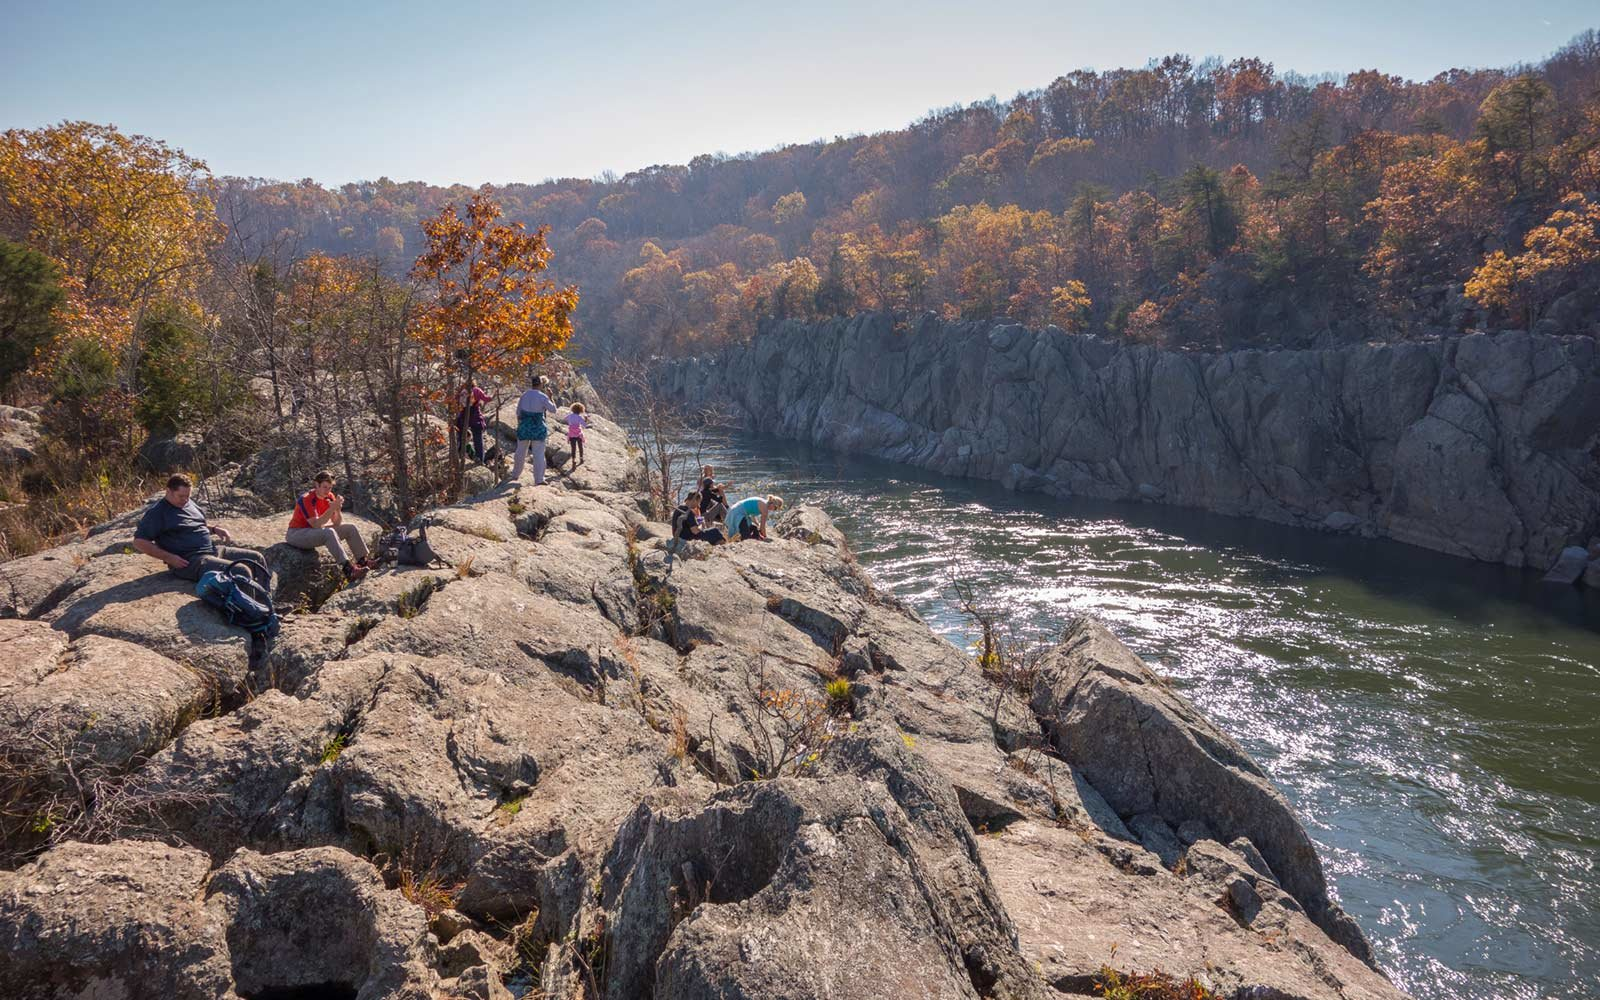 15. Billy Goat Trail